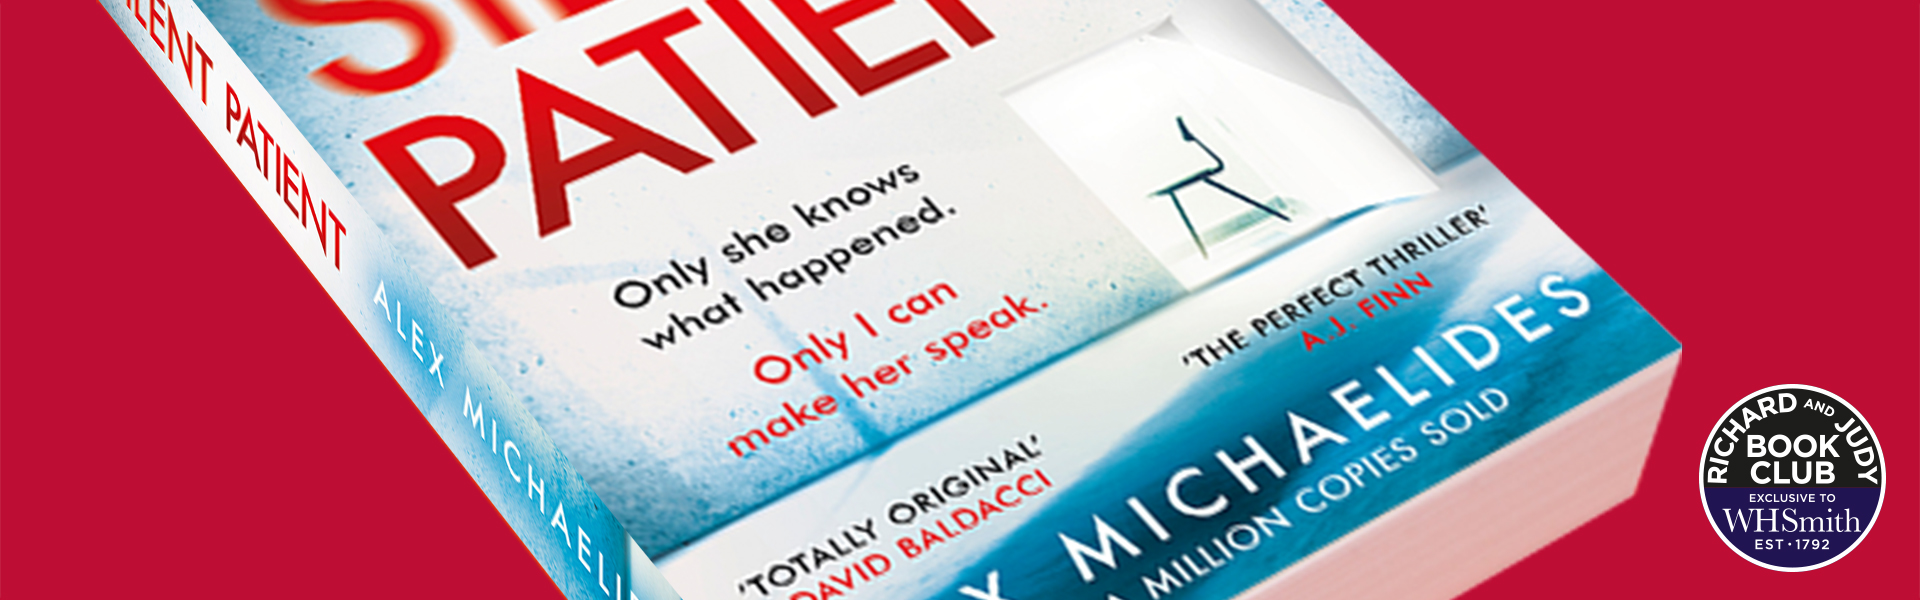 Richard and Judy Introduce The Silent Patient by Alex Michaelides